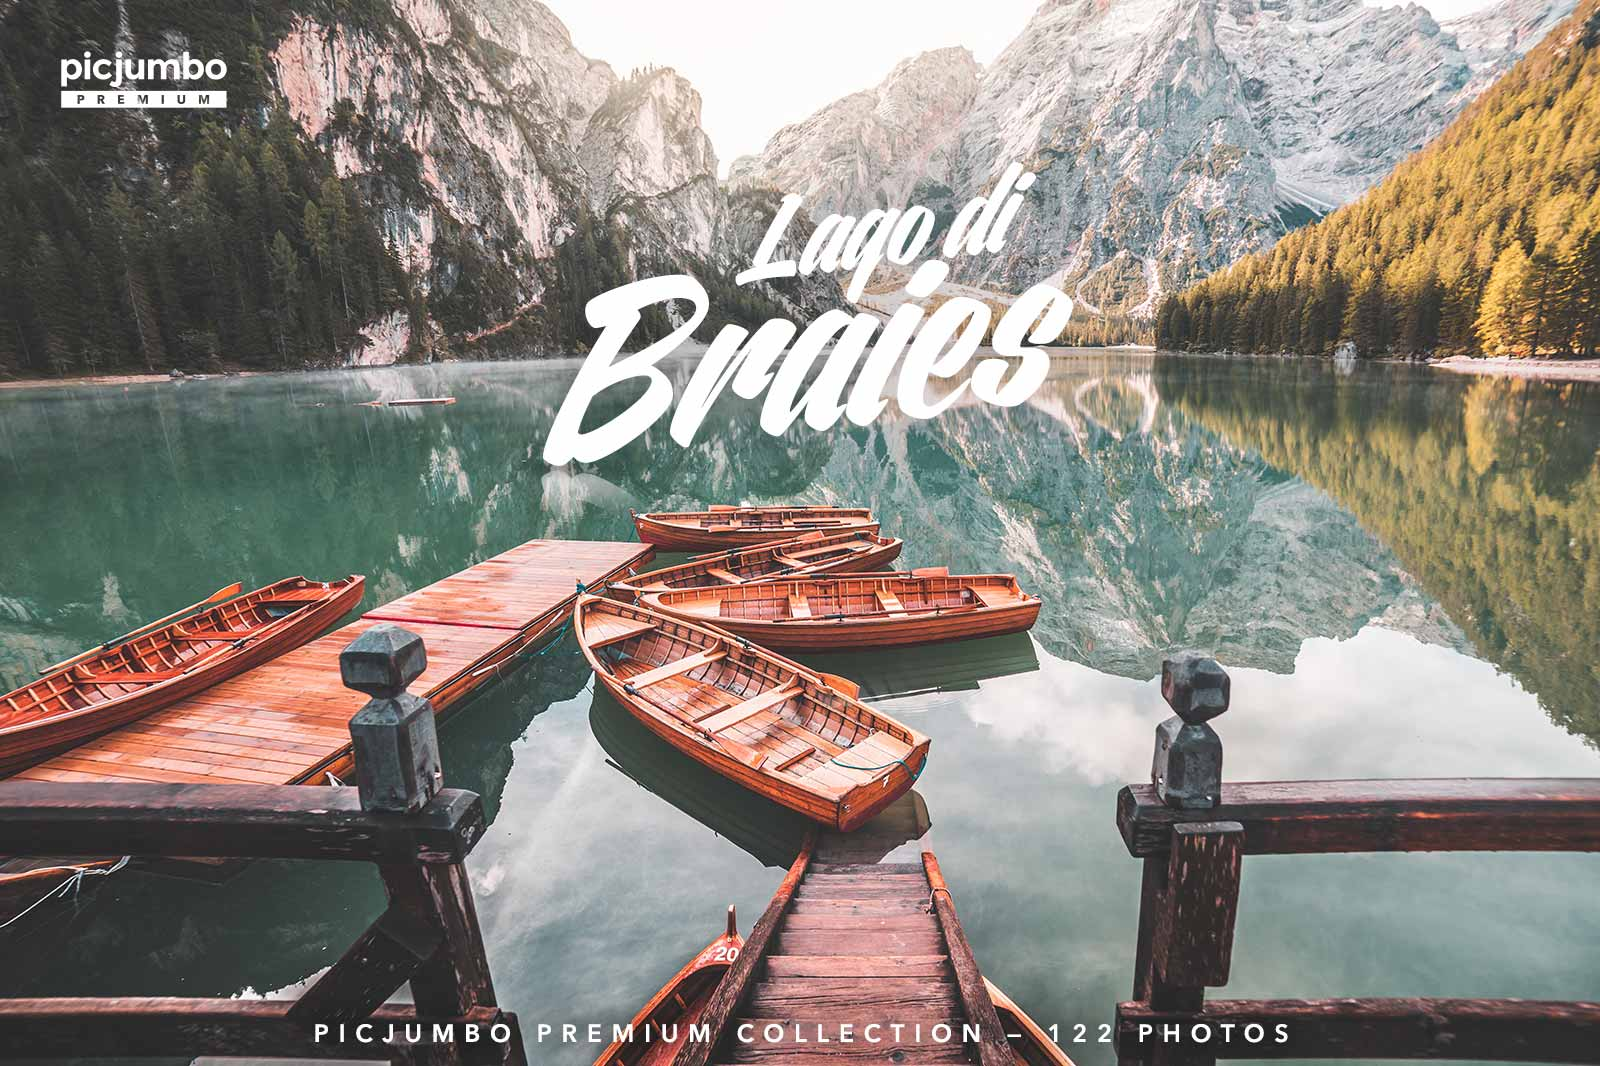 Click here to see Lago di Braies PREMIUM Collection!